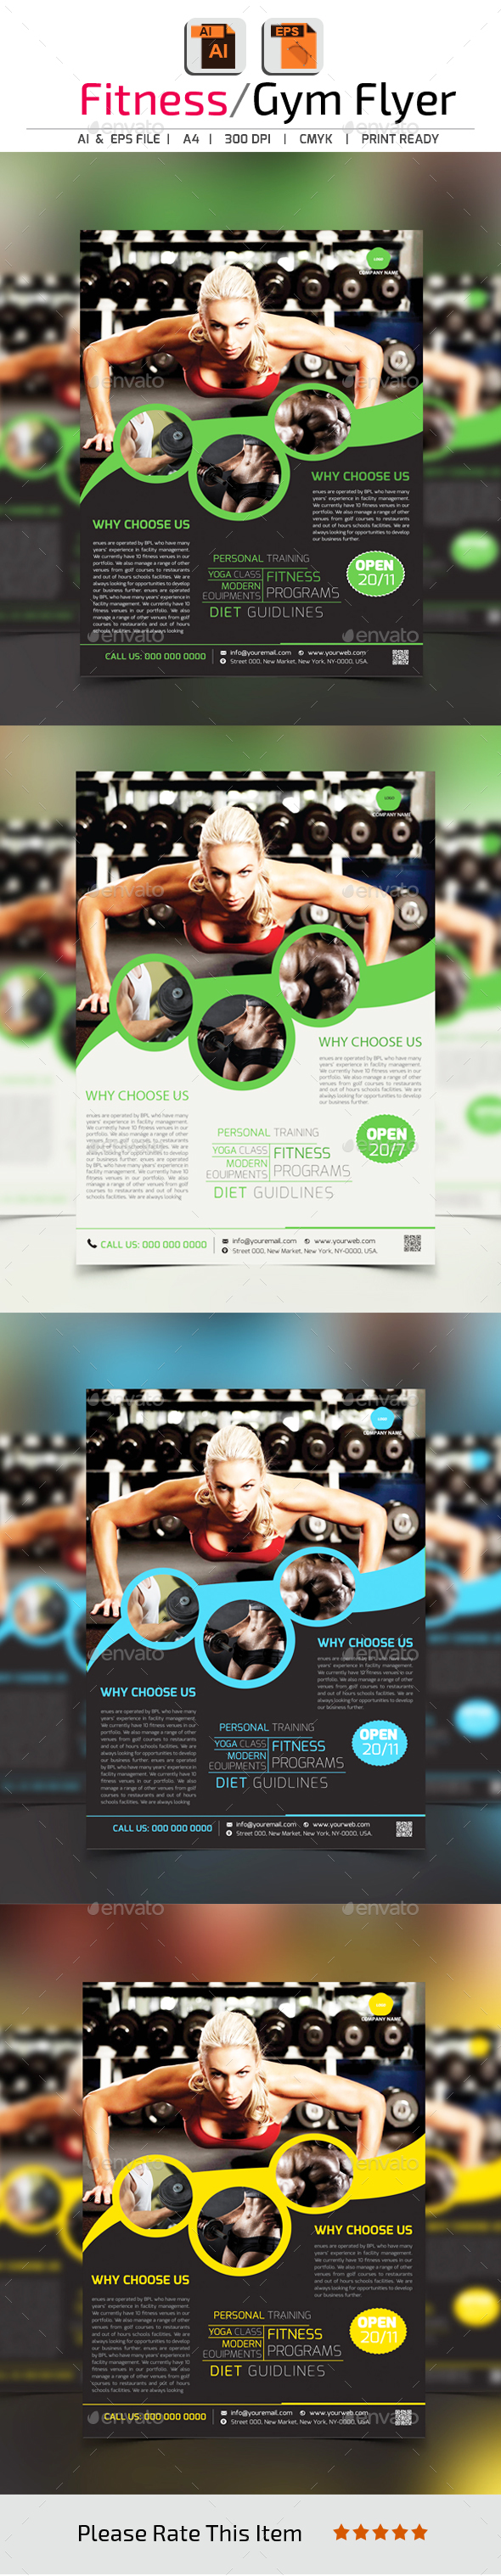 Fitness/Gym Flyer Template